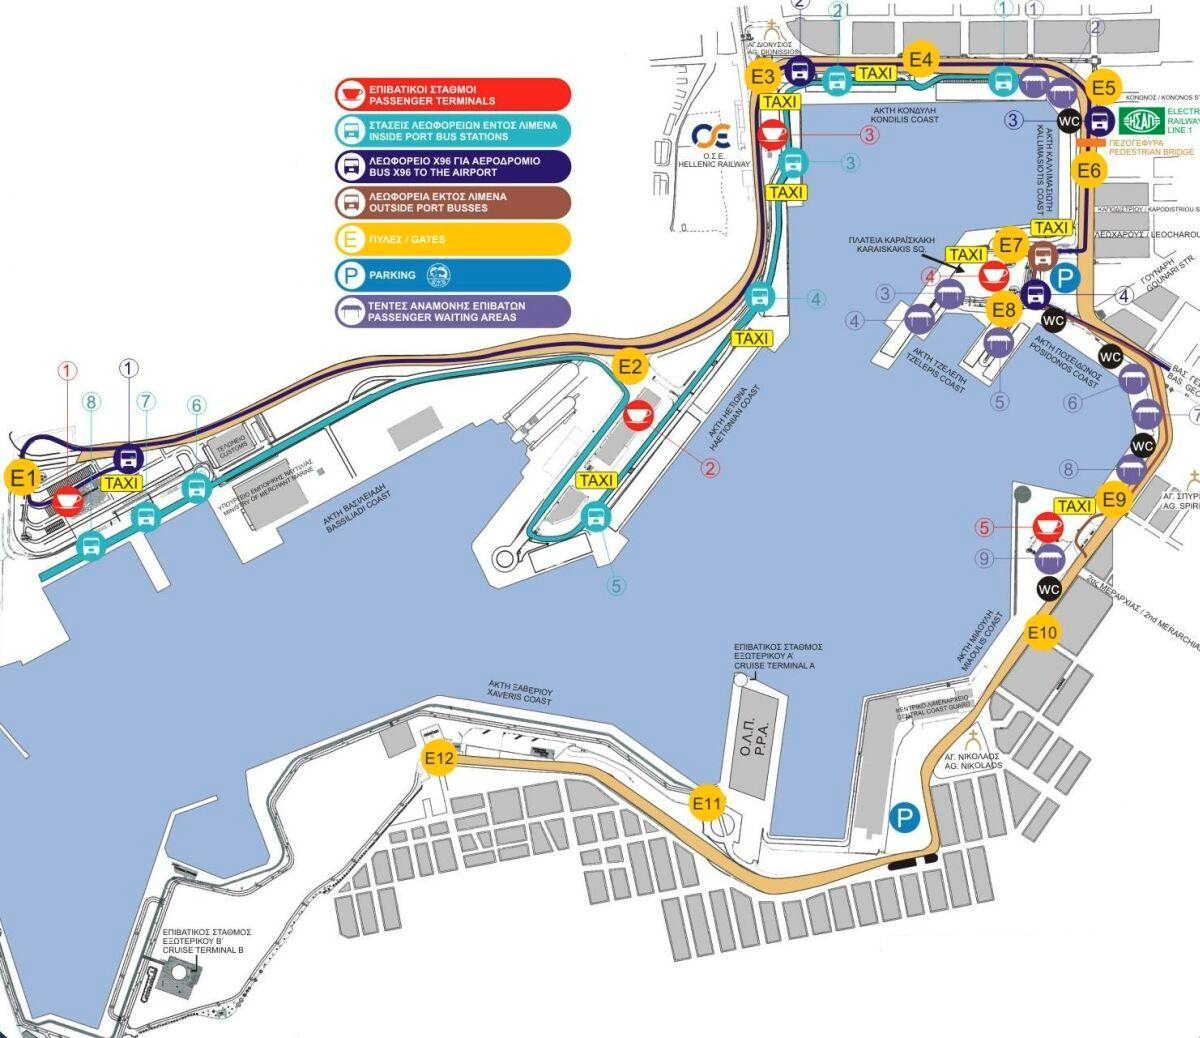 Piraeus port information map.jpg